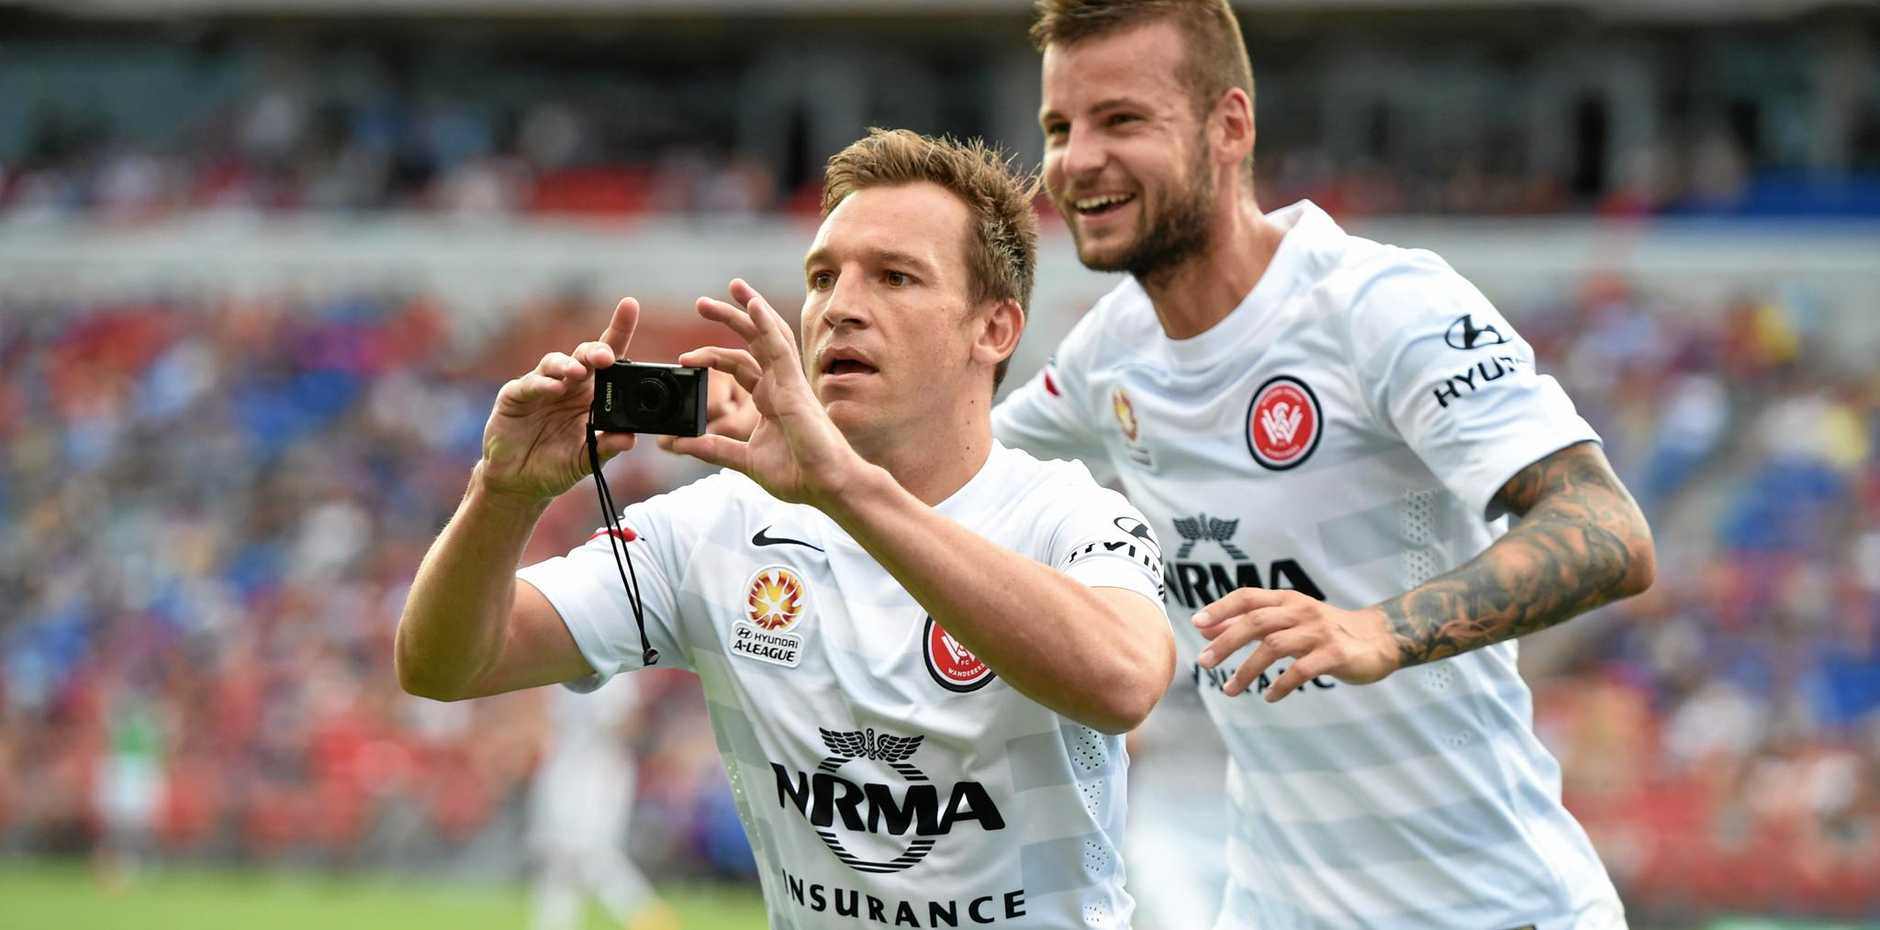 Western Sydney forward Brendon Santalab takes a photo of Wanderers supporters after scoring last season.